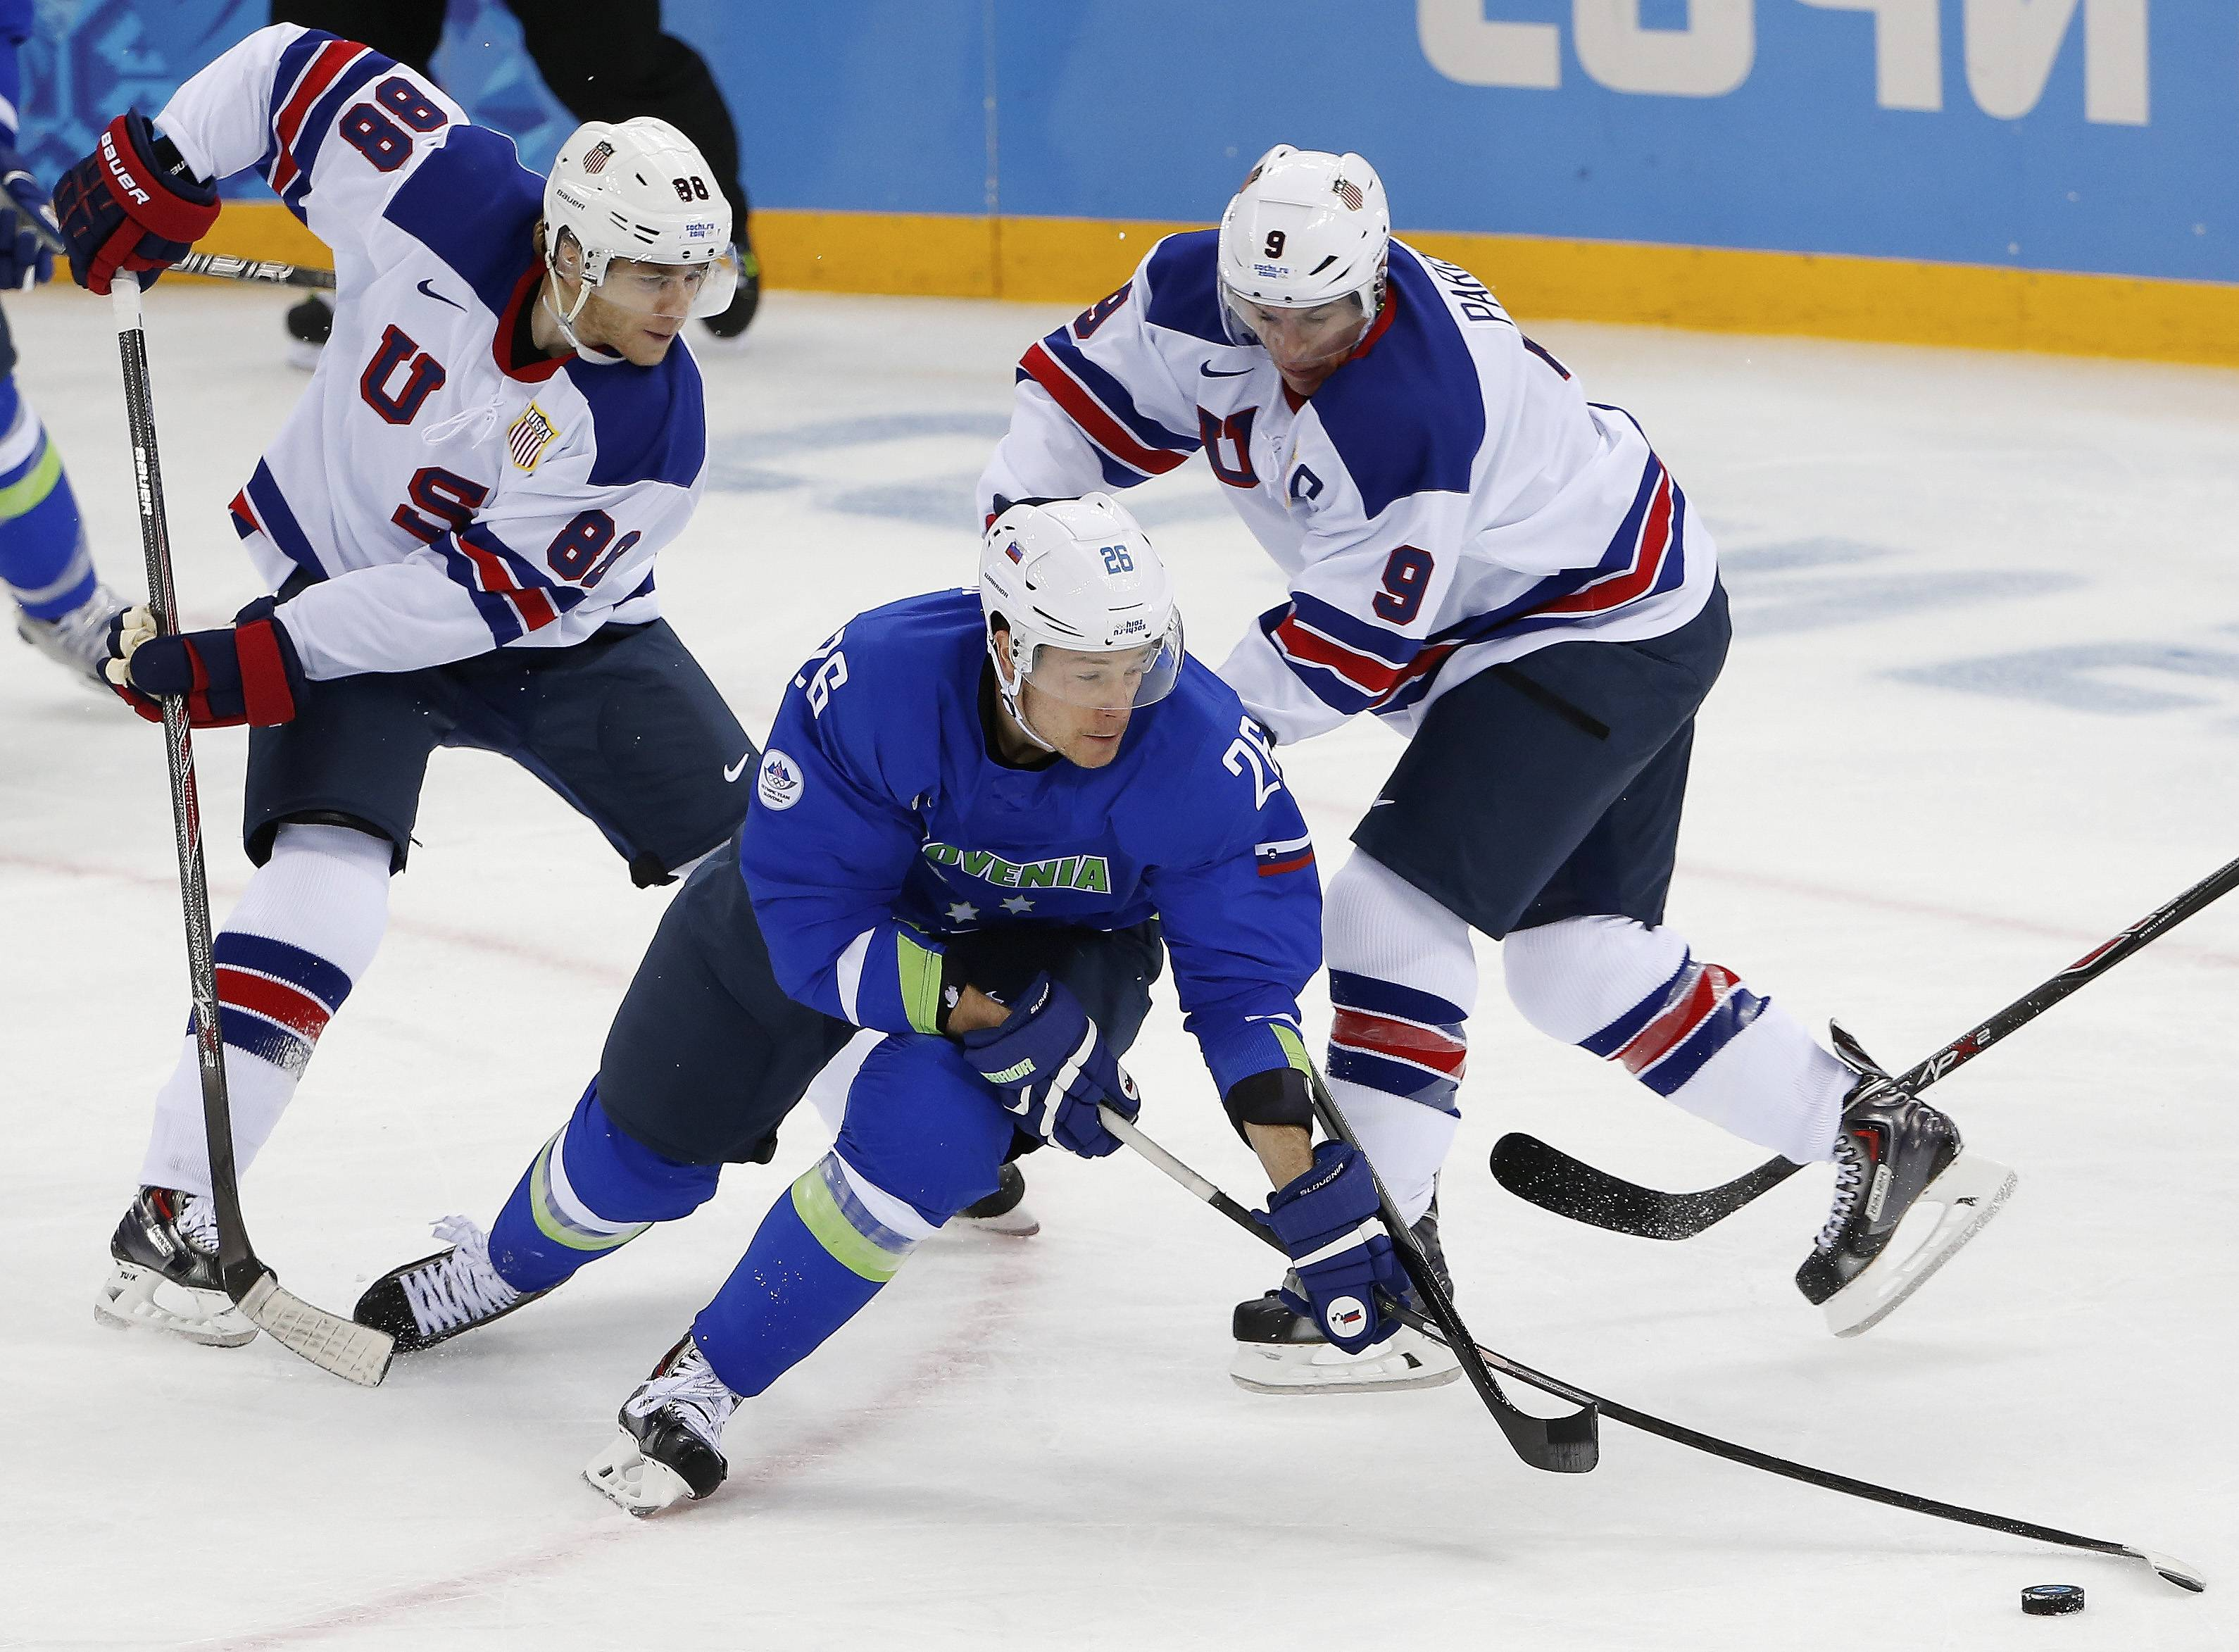 Team USA forwards Patrick Kane, left, and Zach Parise team up on Slovenia's Jan Urbas during Sunday's 5-1 victory for the Americans to close their preliminary-round games. Team USA advances to the elimination round as the No. 2 seed behind Sweden.